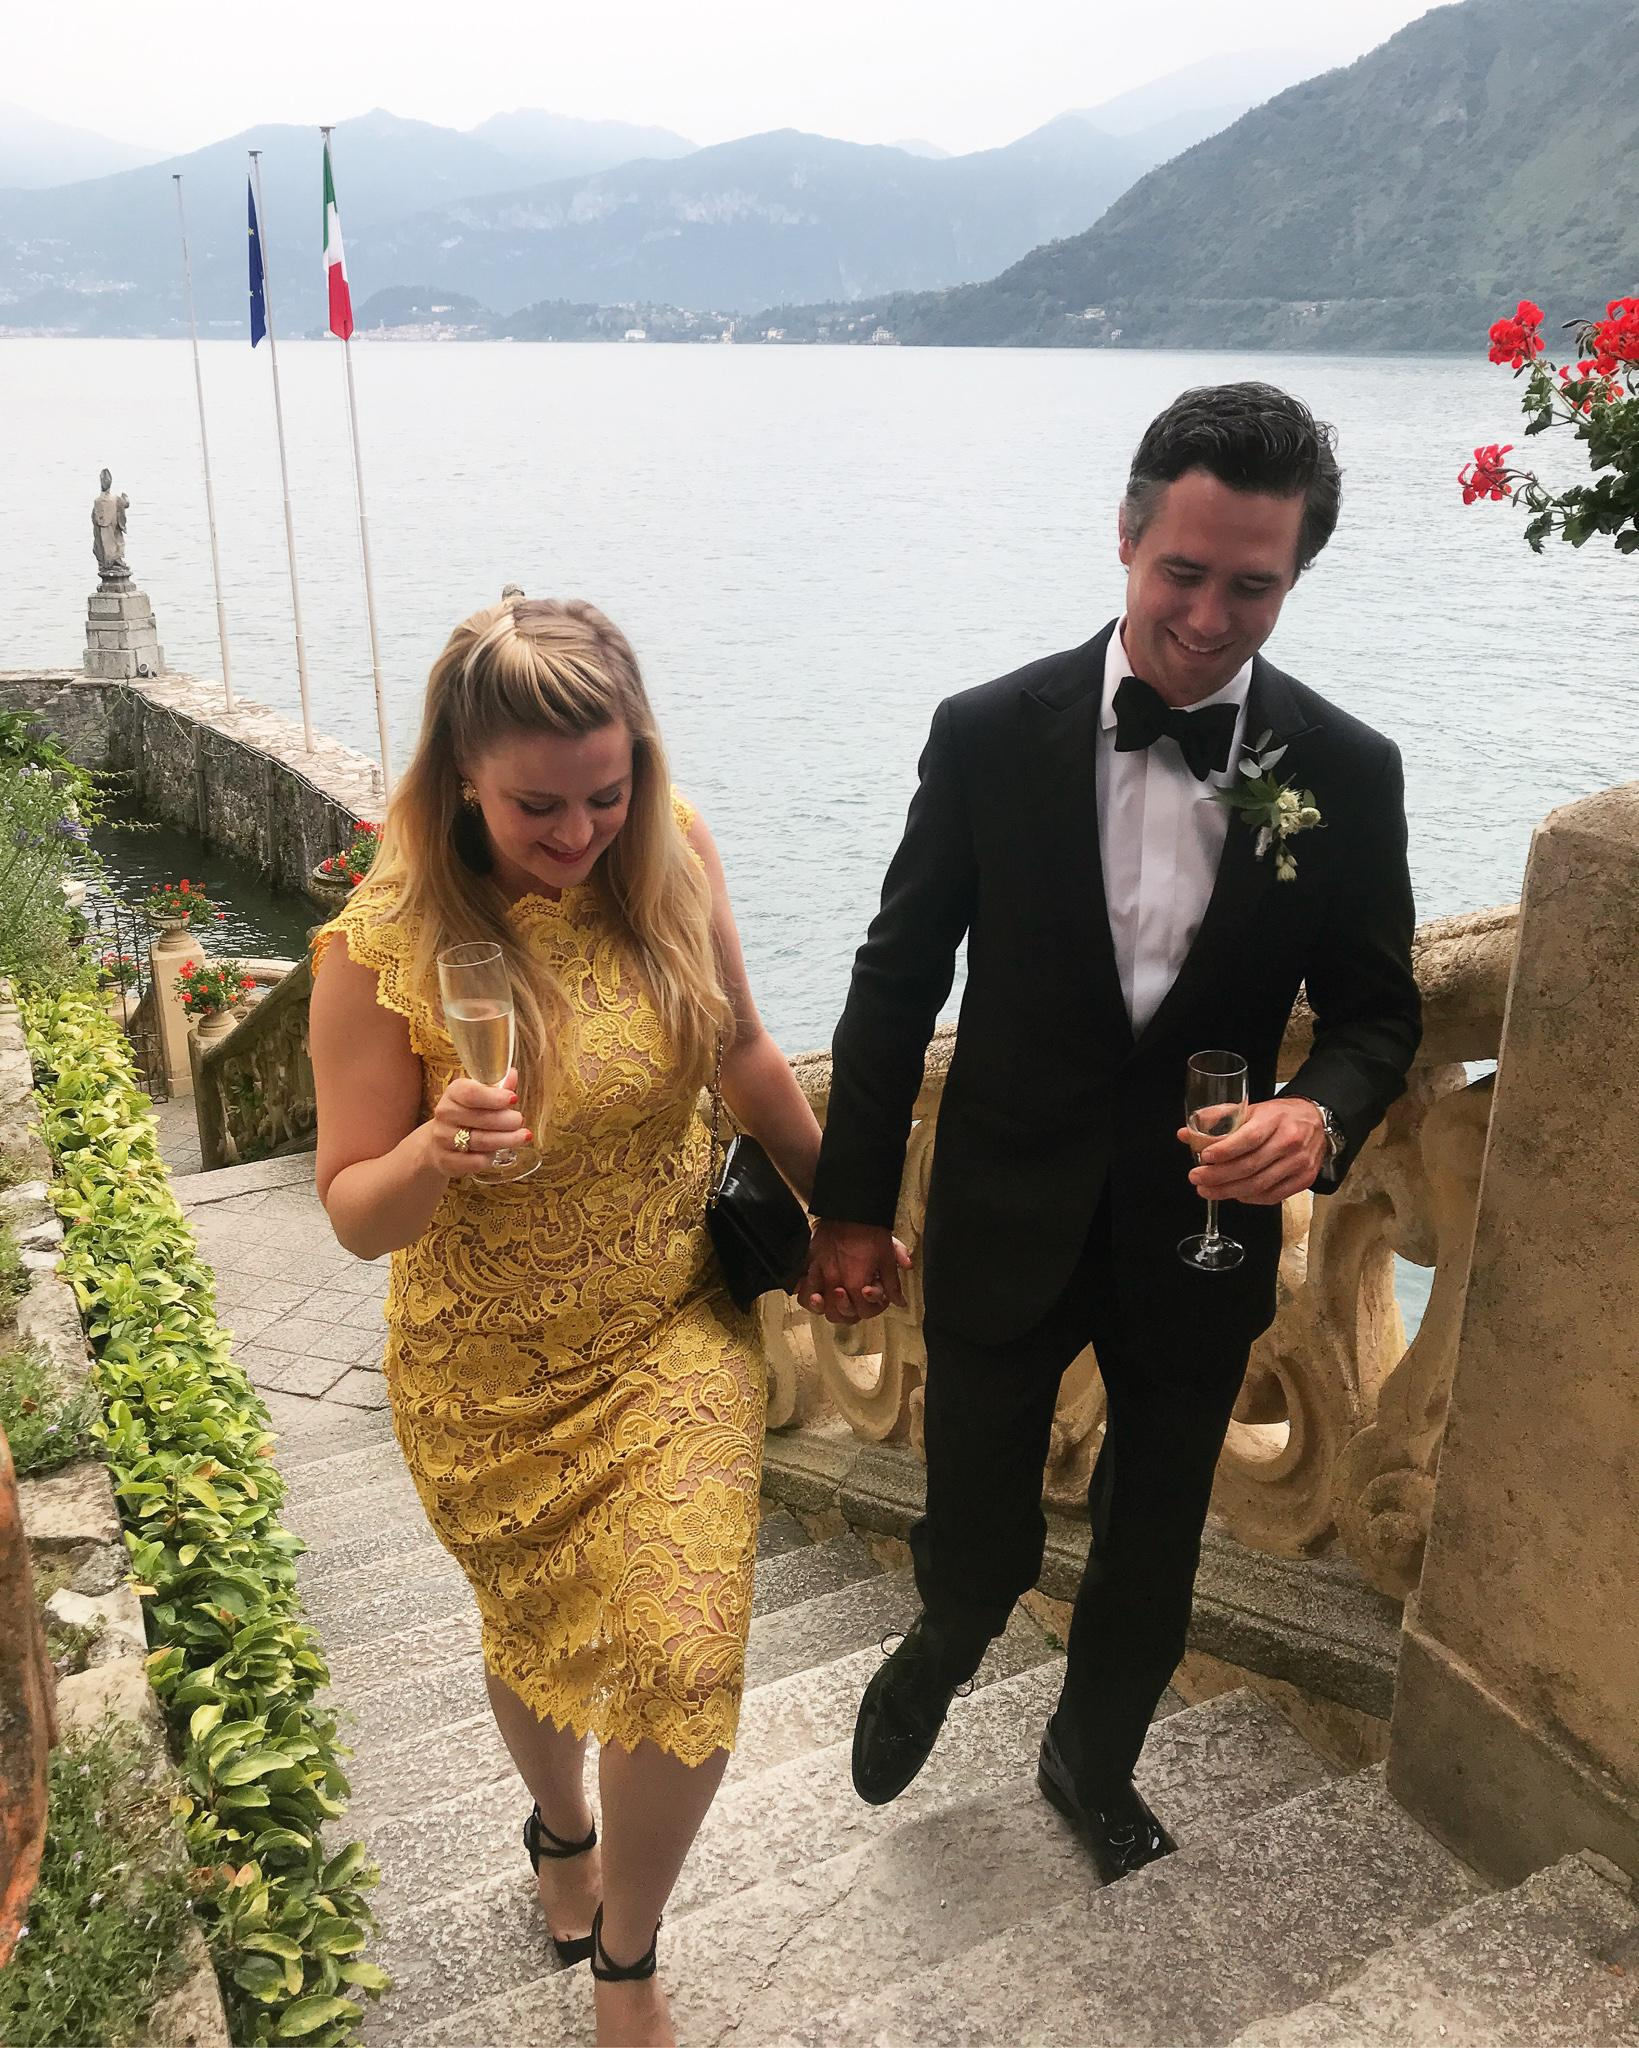 Trent, Joe's cousin, and Ivey's wedding in Lake Como, Italy in June 2019.